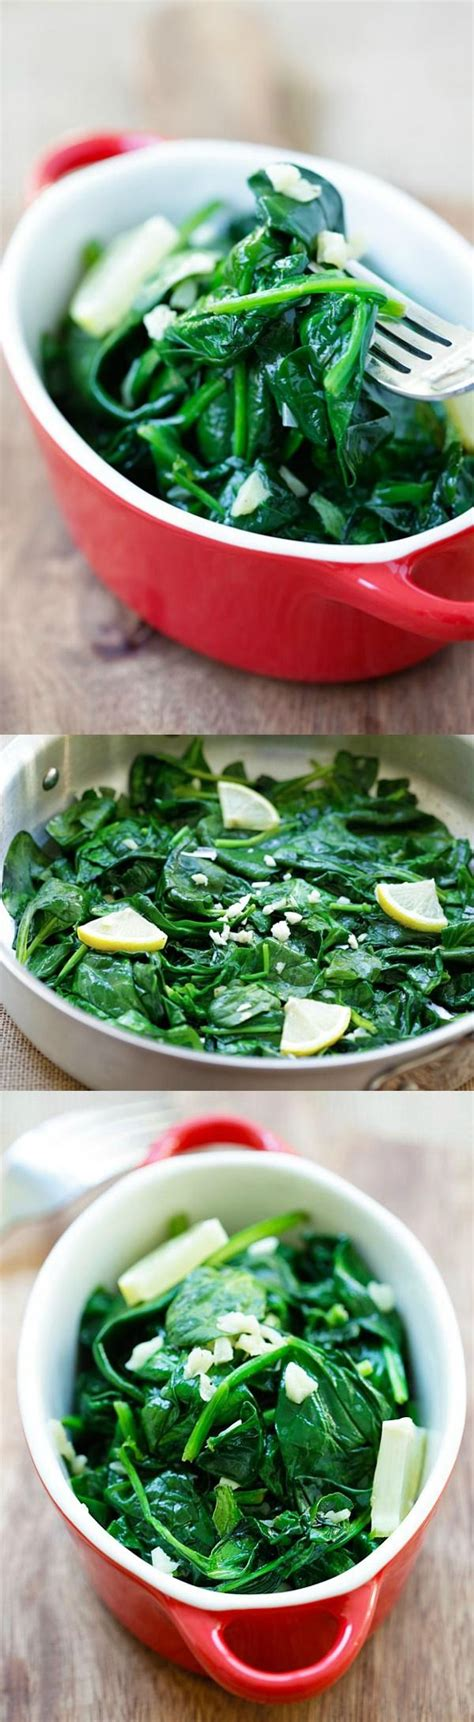 recipes healthy spinach easy sauteed garlic butter chicken salad heal topped bacon ranch dish main summer dishes fitnessviral